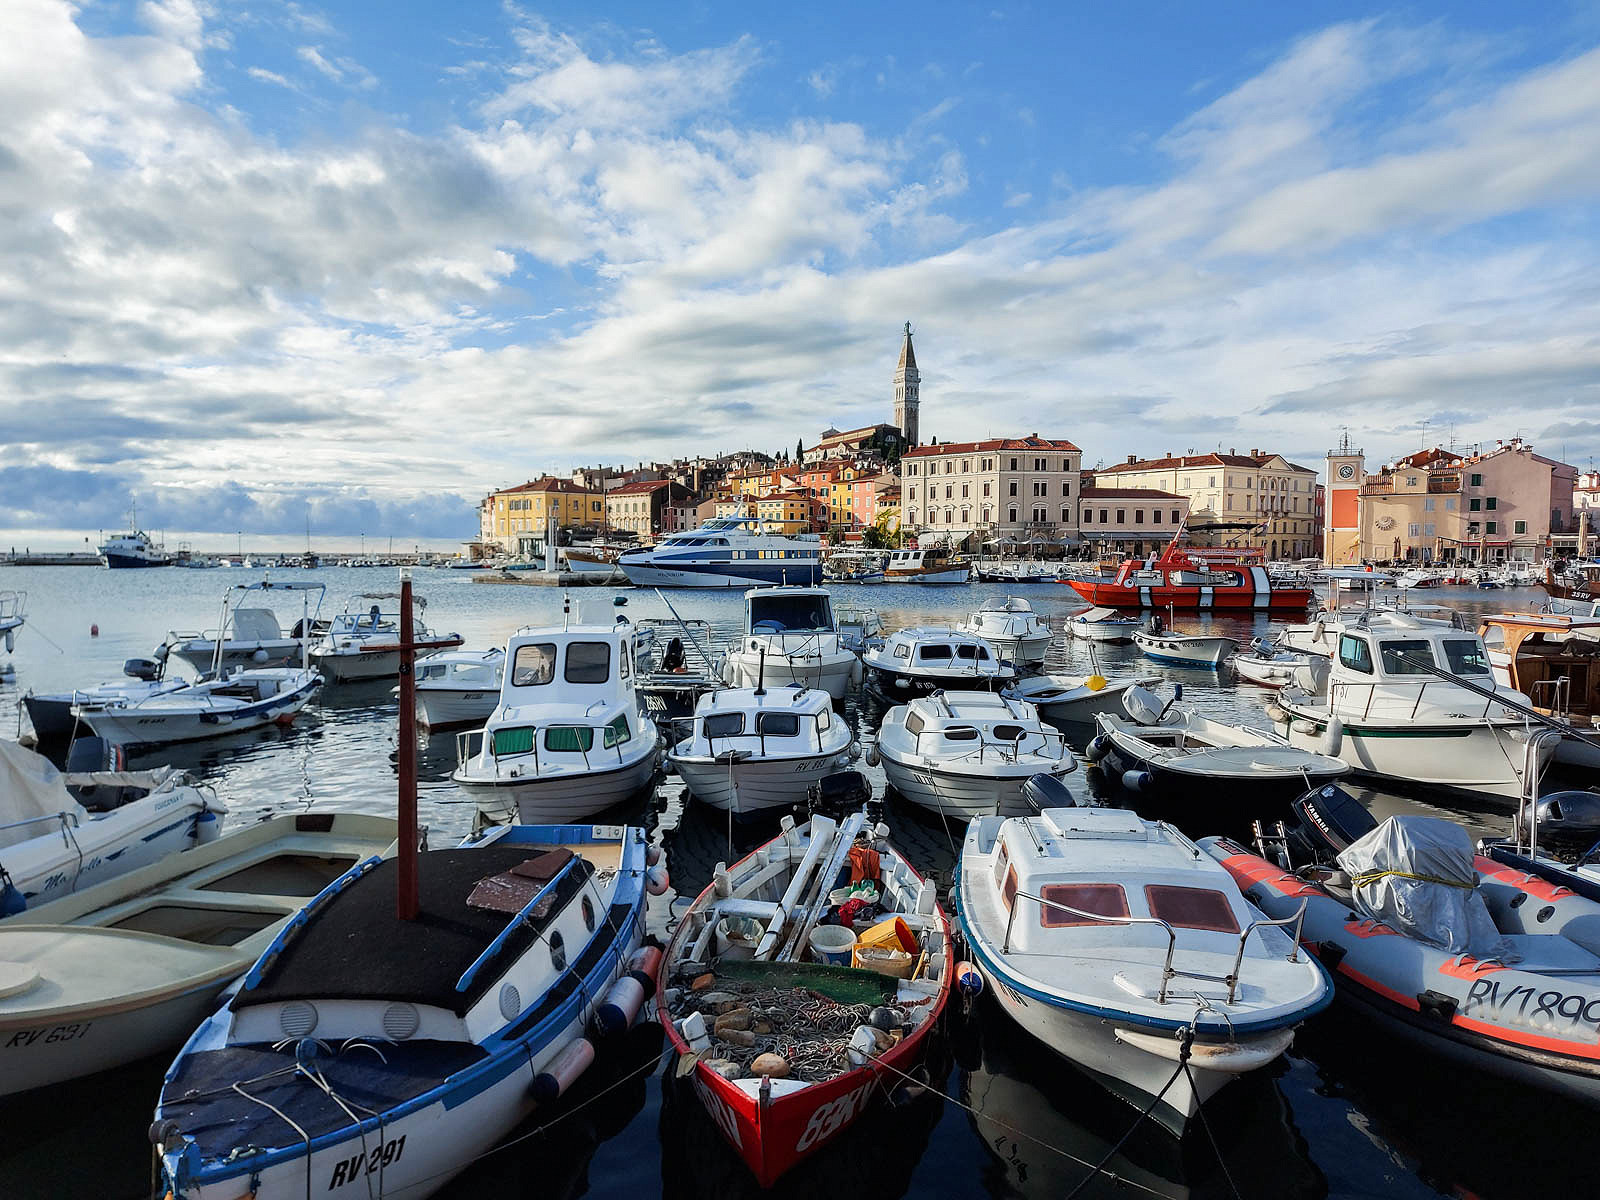 A Week in Rovinj, Istria - Why We Love it, Where to Stay, Shop and Eat